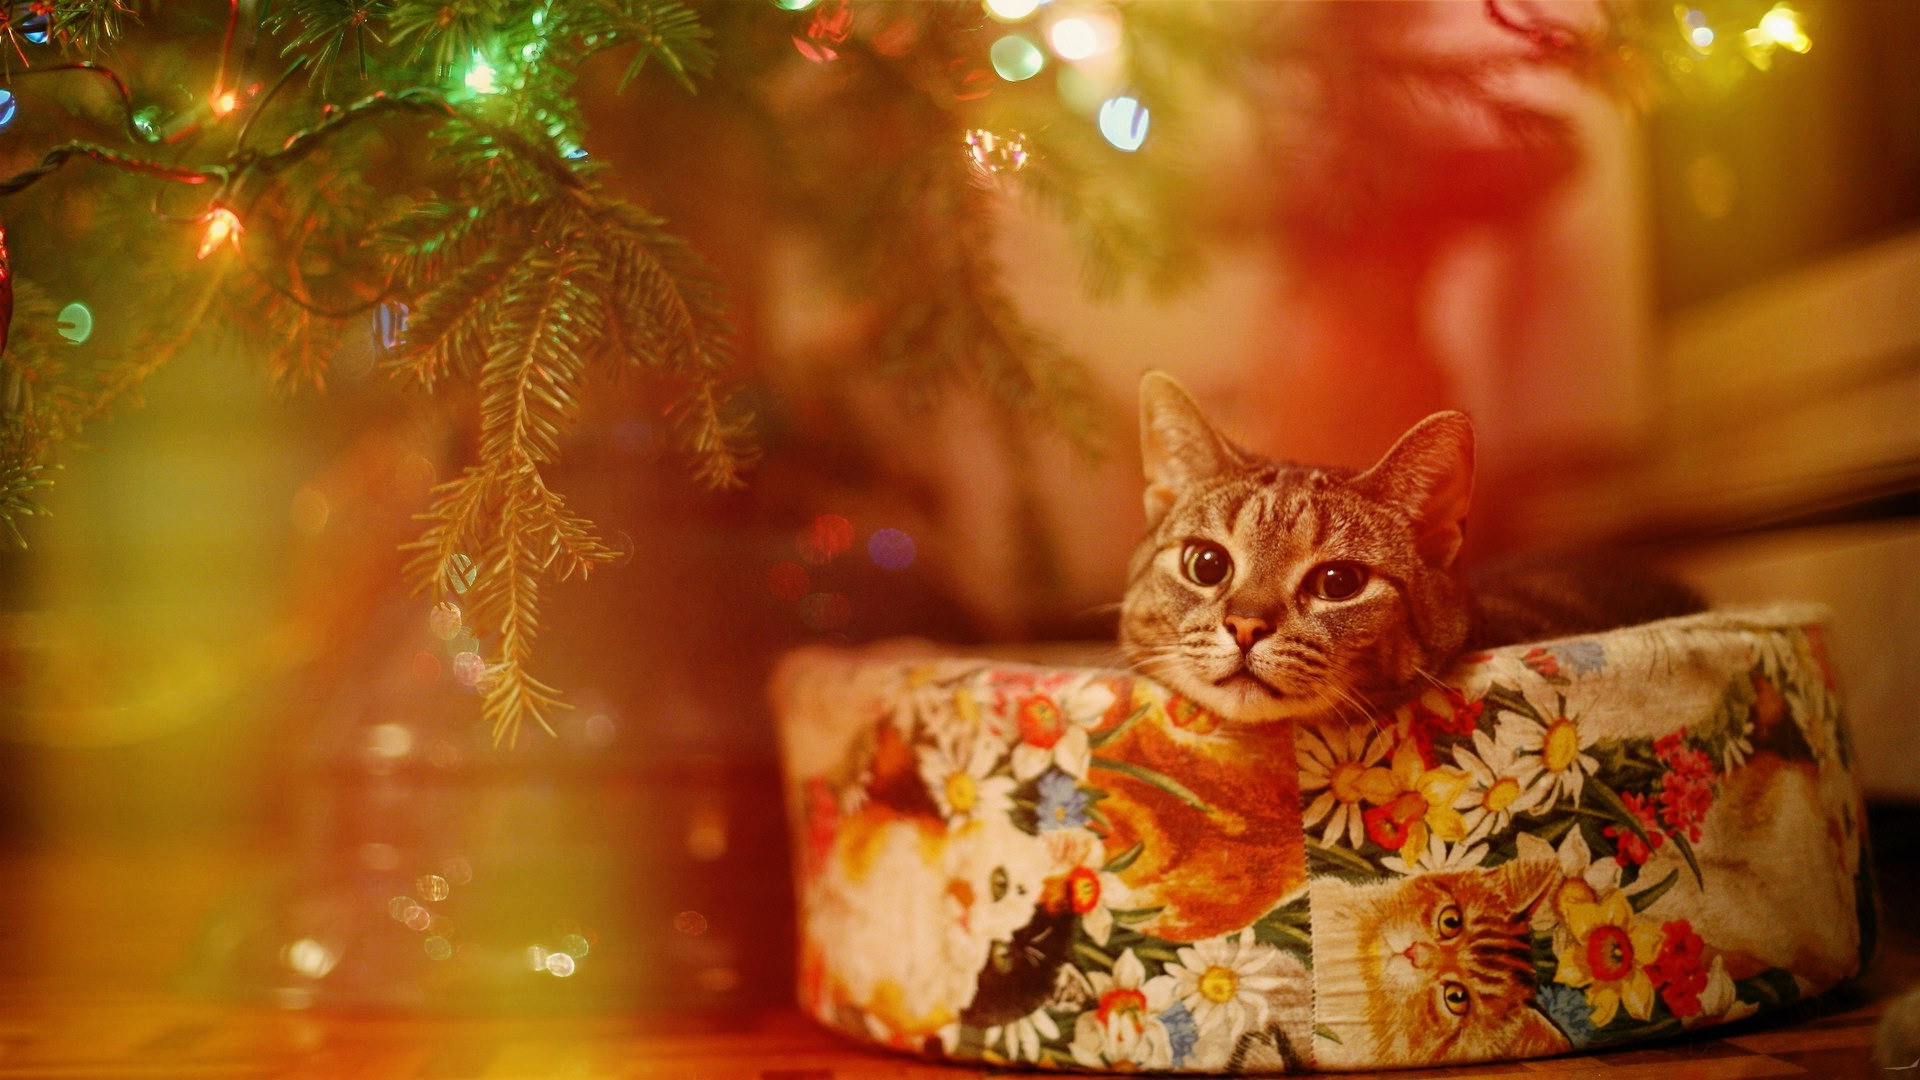 Cute Background Wallpaper For Computer Christmas Lights Animal Hd Cat Lights Christmas Wallpapers Hd Desktop And Mobile